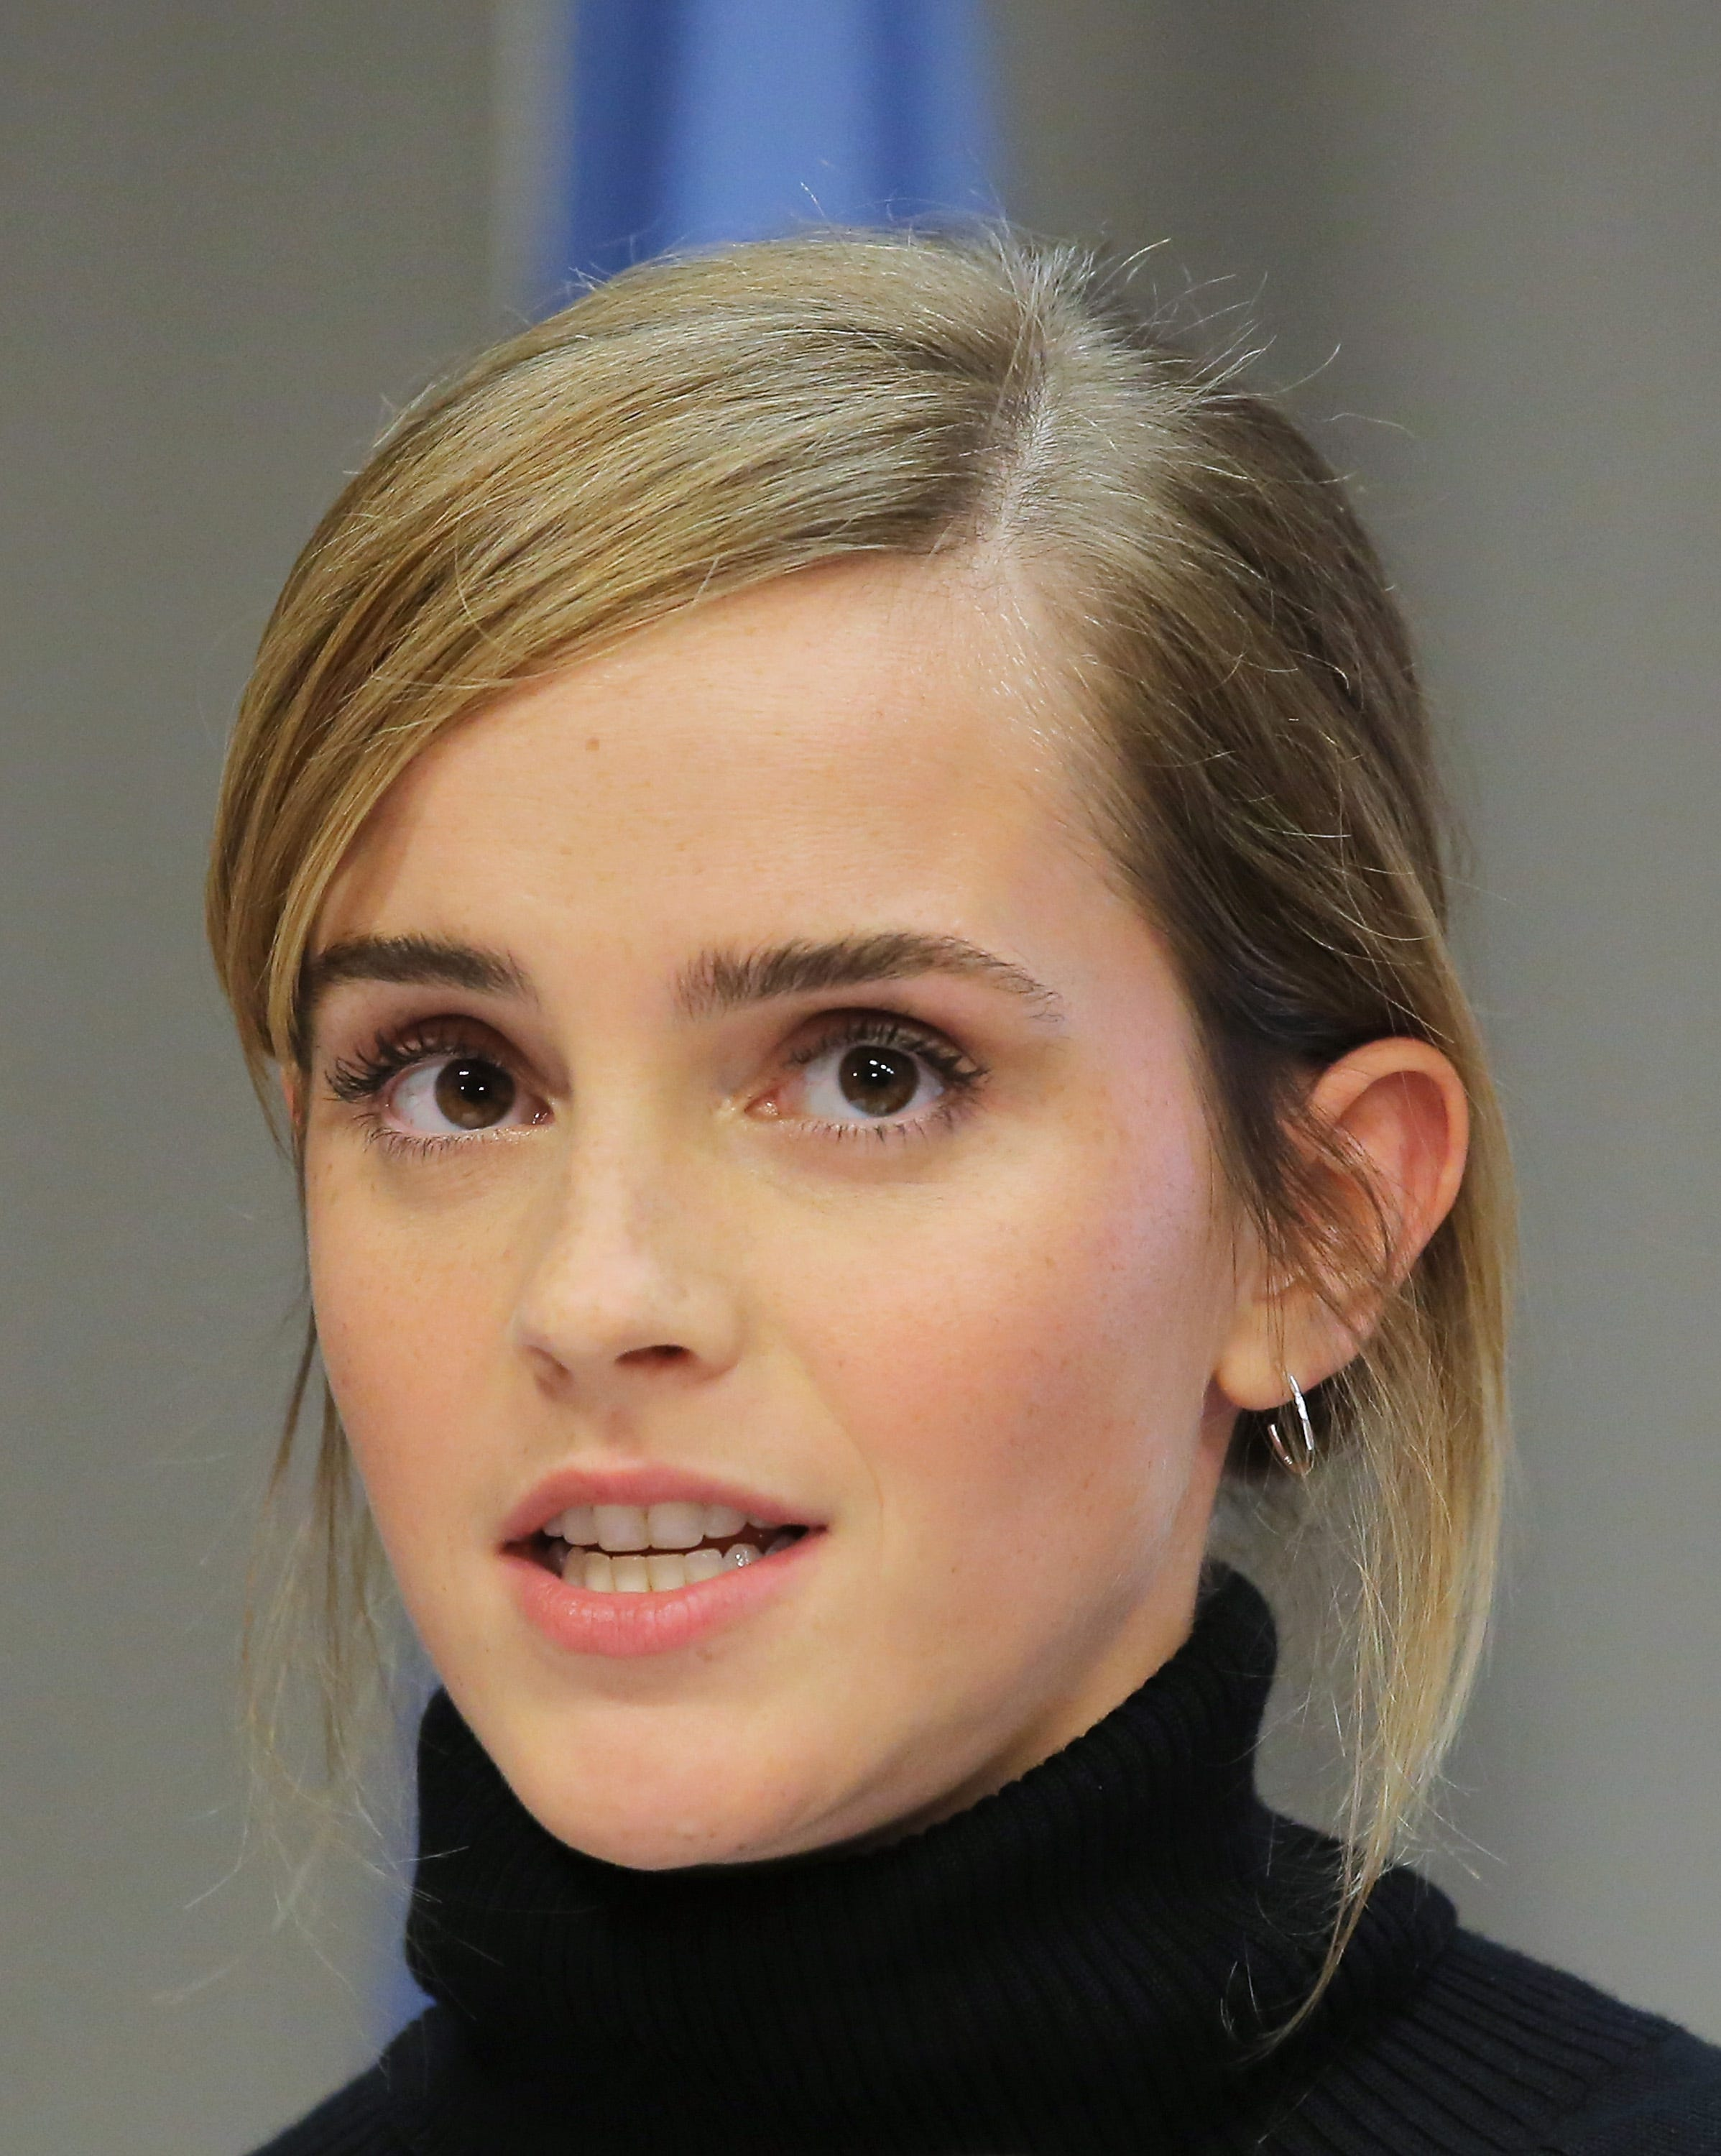 Emma Watson Speaks Out About Campus Sexual Assault At U.N.